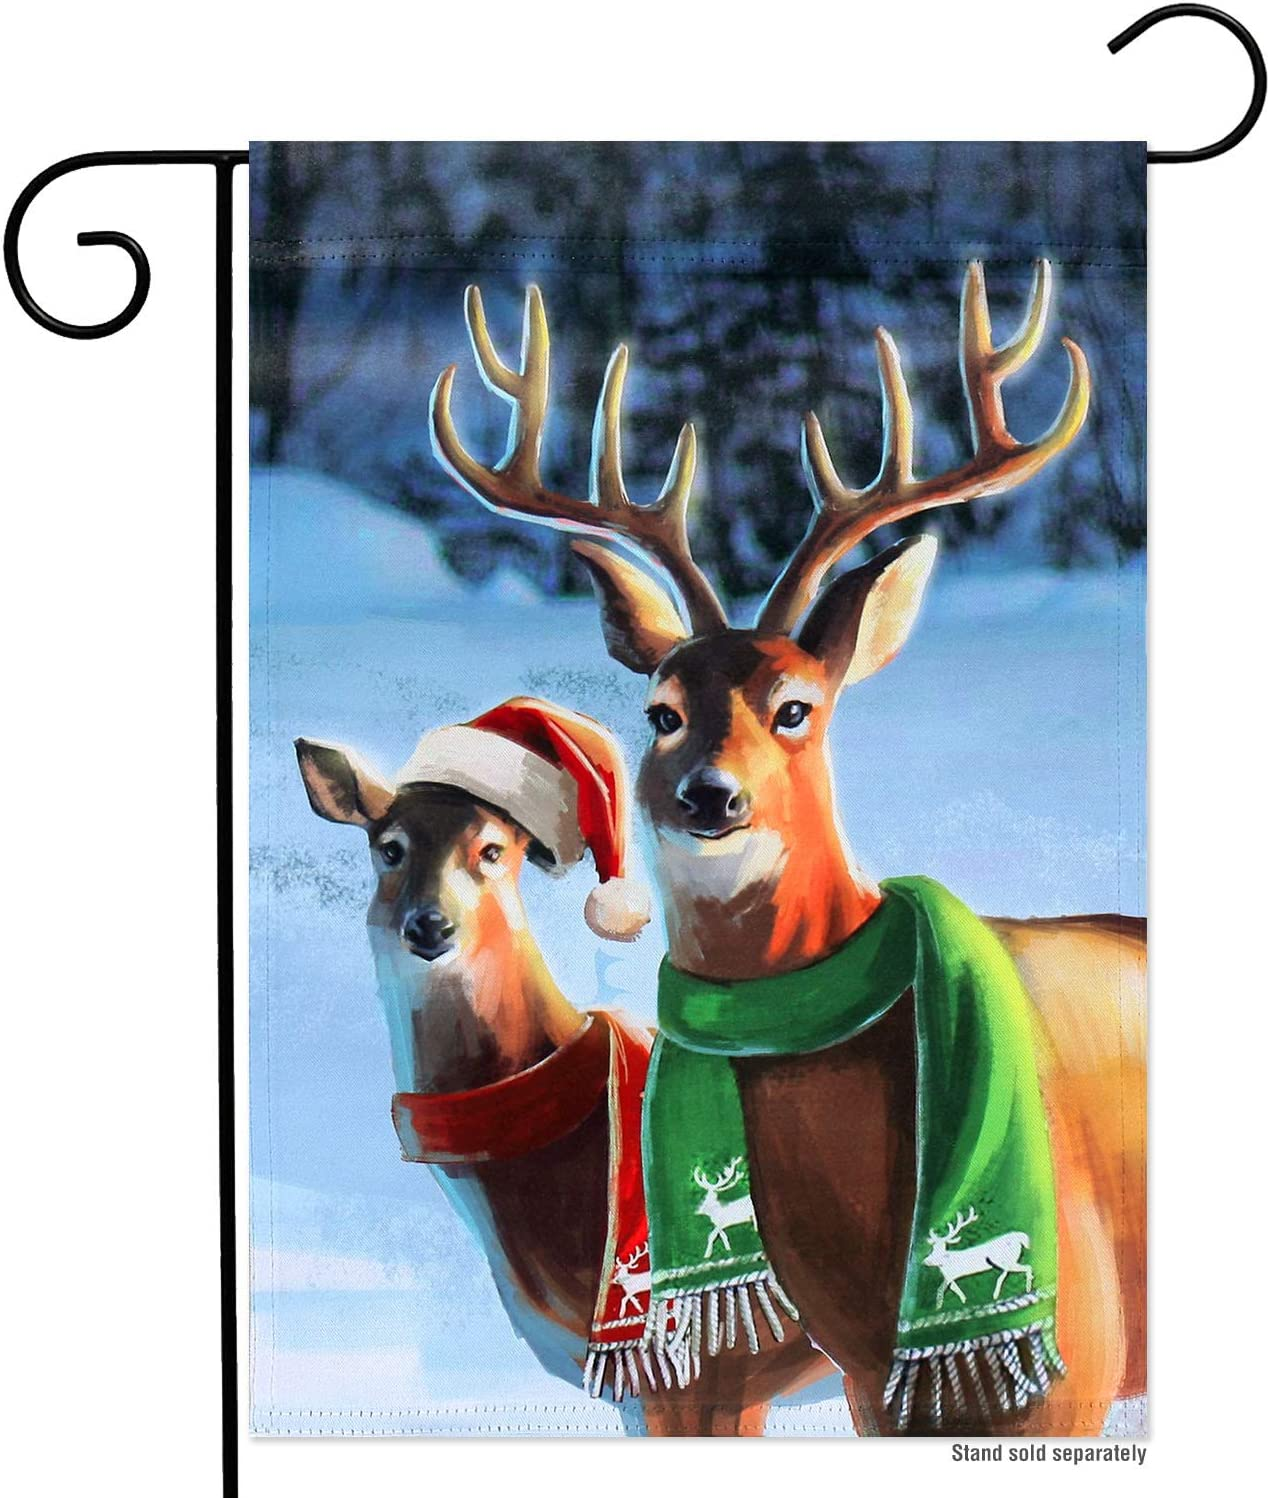 YMYIELD Christmas Garden Flags 12x18 Double Sided, Reindeer Garden Flags for Outside, Happy New Year Winter Courtyard Banner Outdoor Indoor Lawn Home Decoration